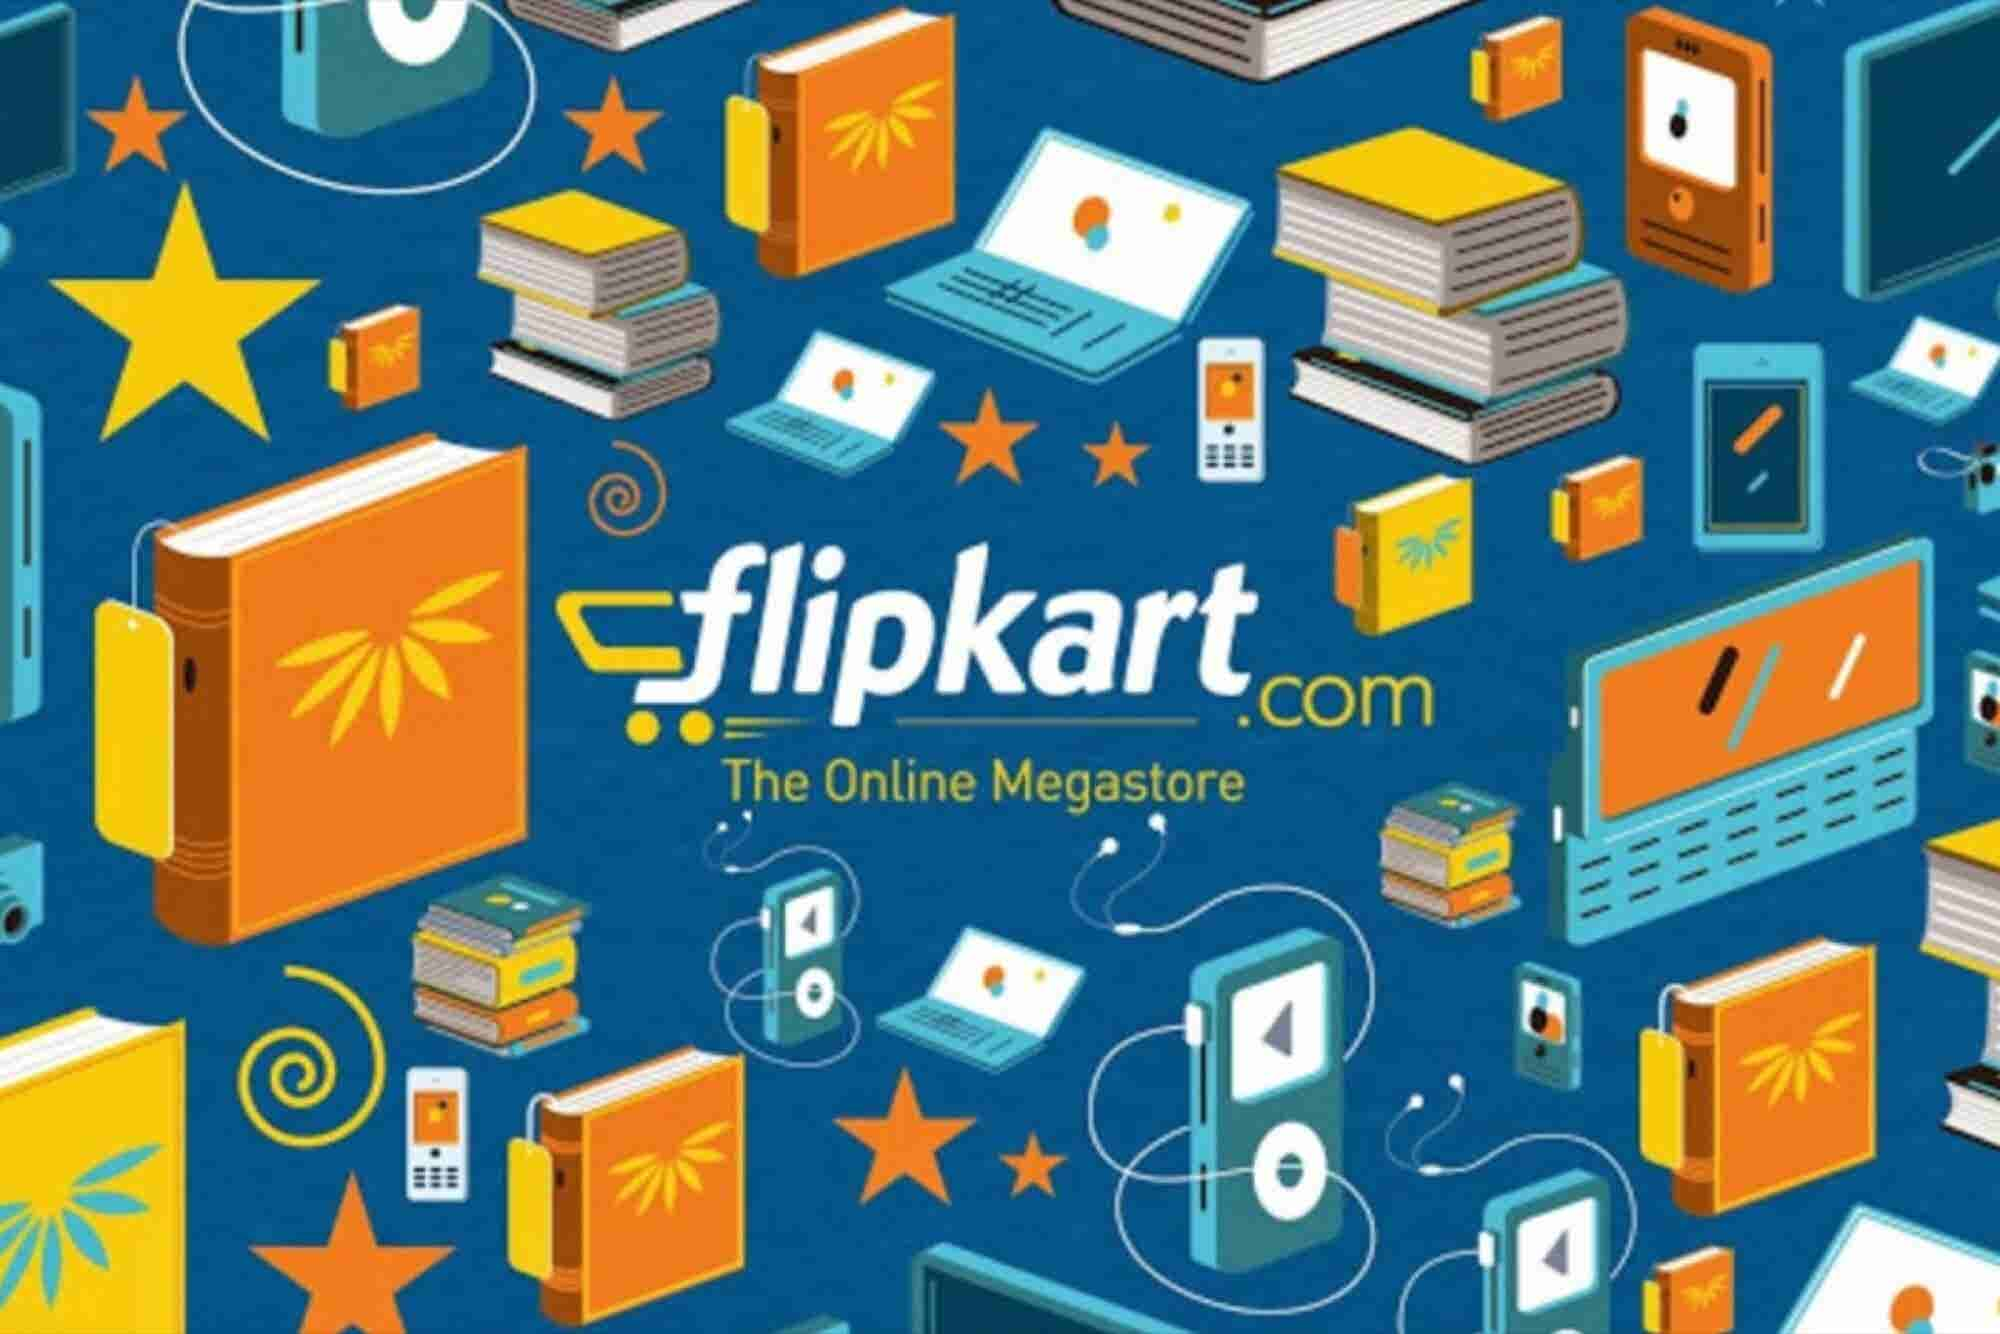 After Ad Platform, now eWallet; Flipkart is on a launching spree